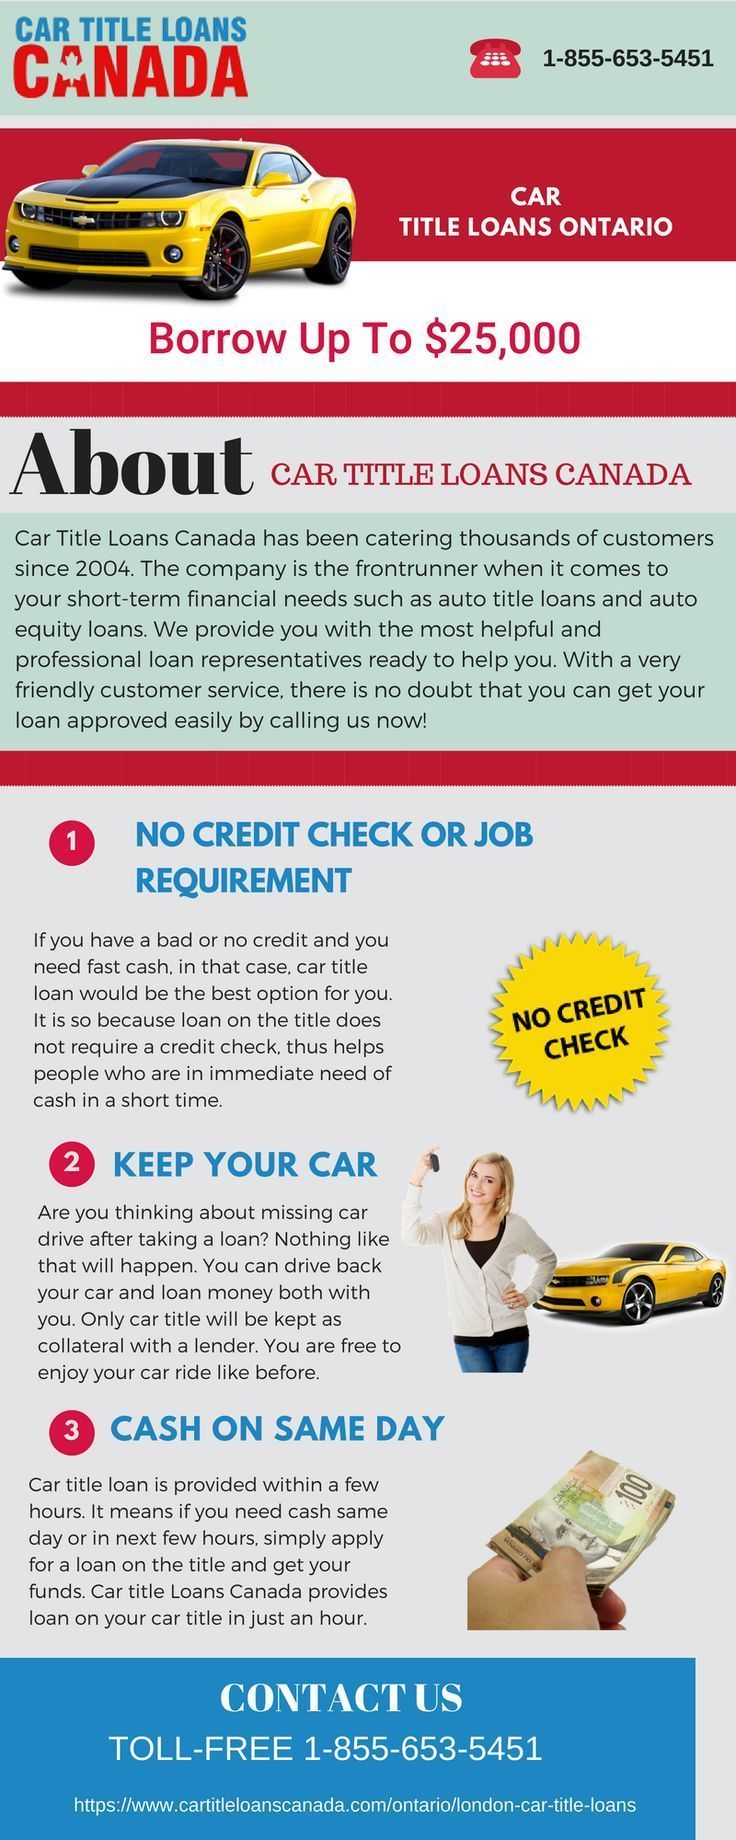 Car Title Loans Canada Is A Good Solution For Lending Car Title Loans In Ontario Car Title Loan Car Loans